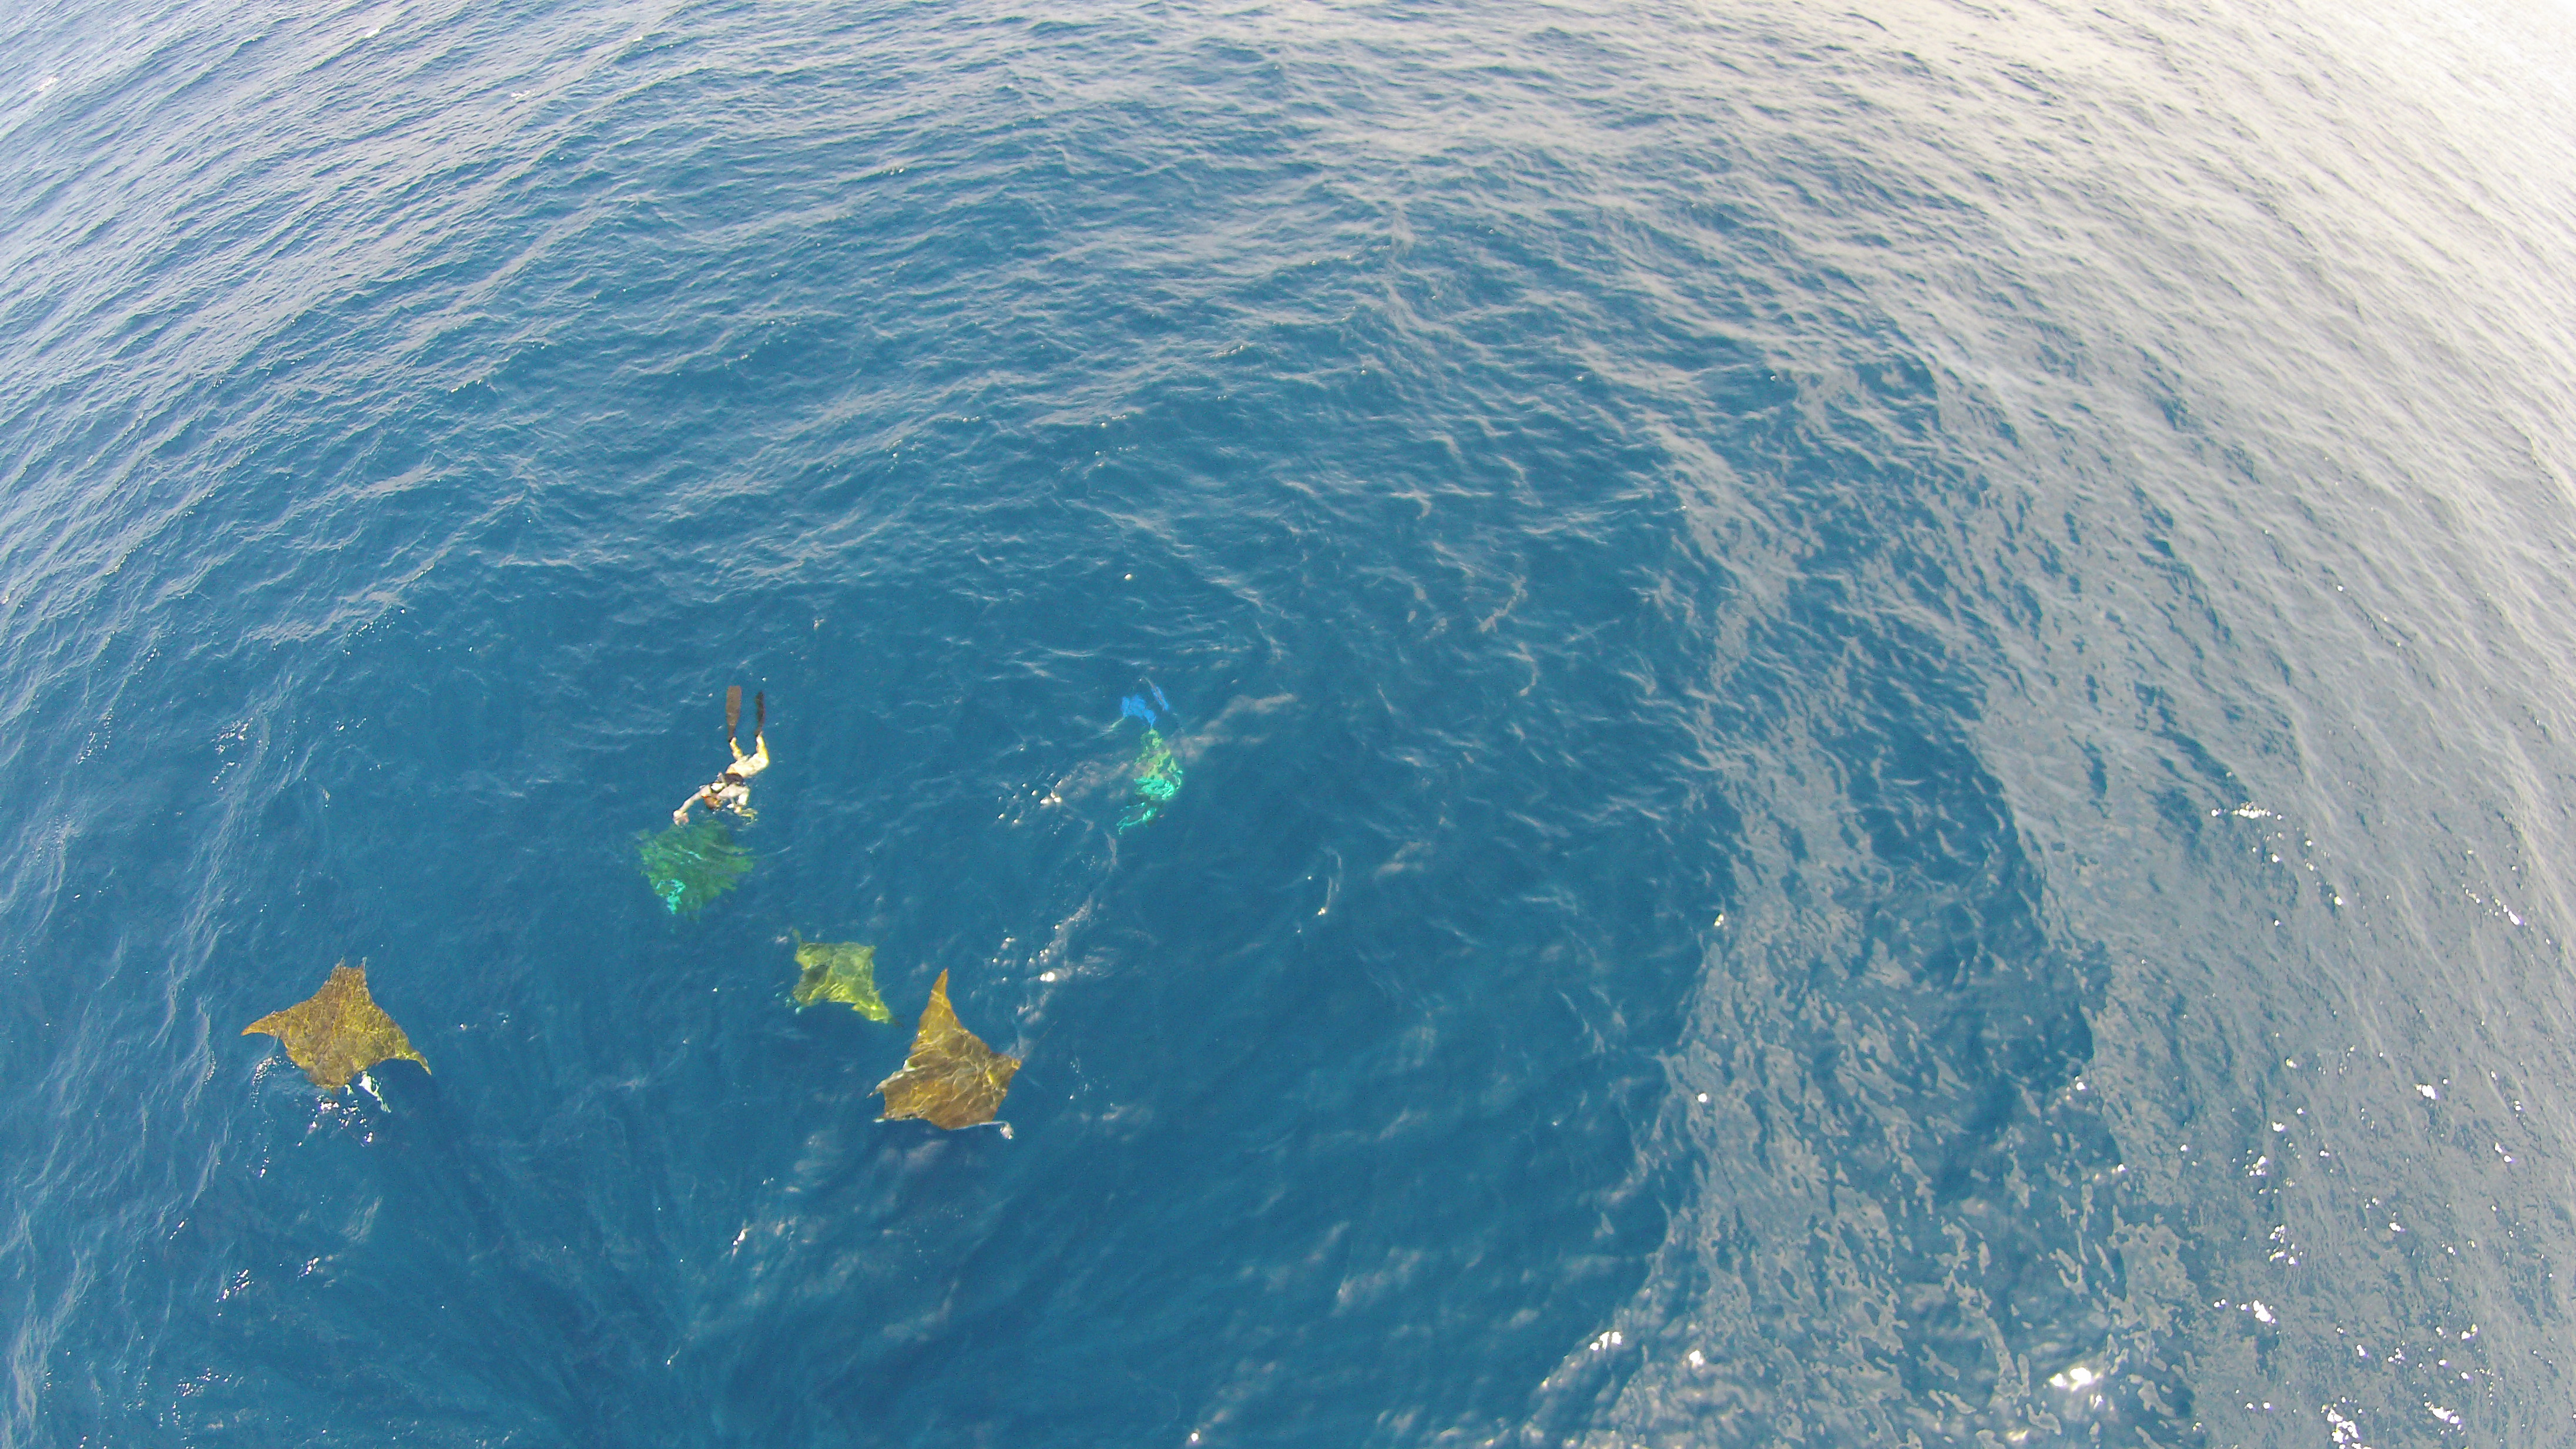 Researchers Sibele Mendonça and Bruno Macena interacting with a group of four Chilean devil rays Mobula tarapacana.